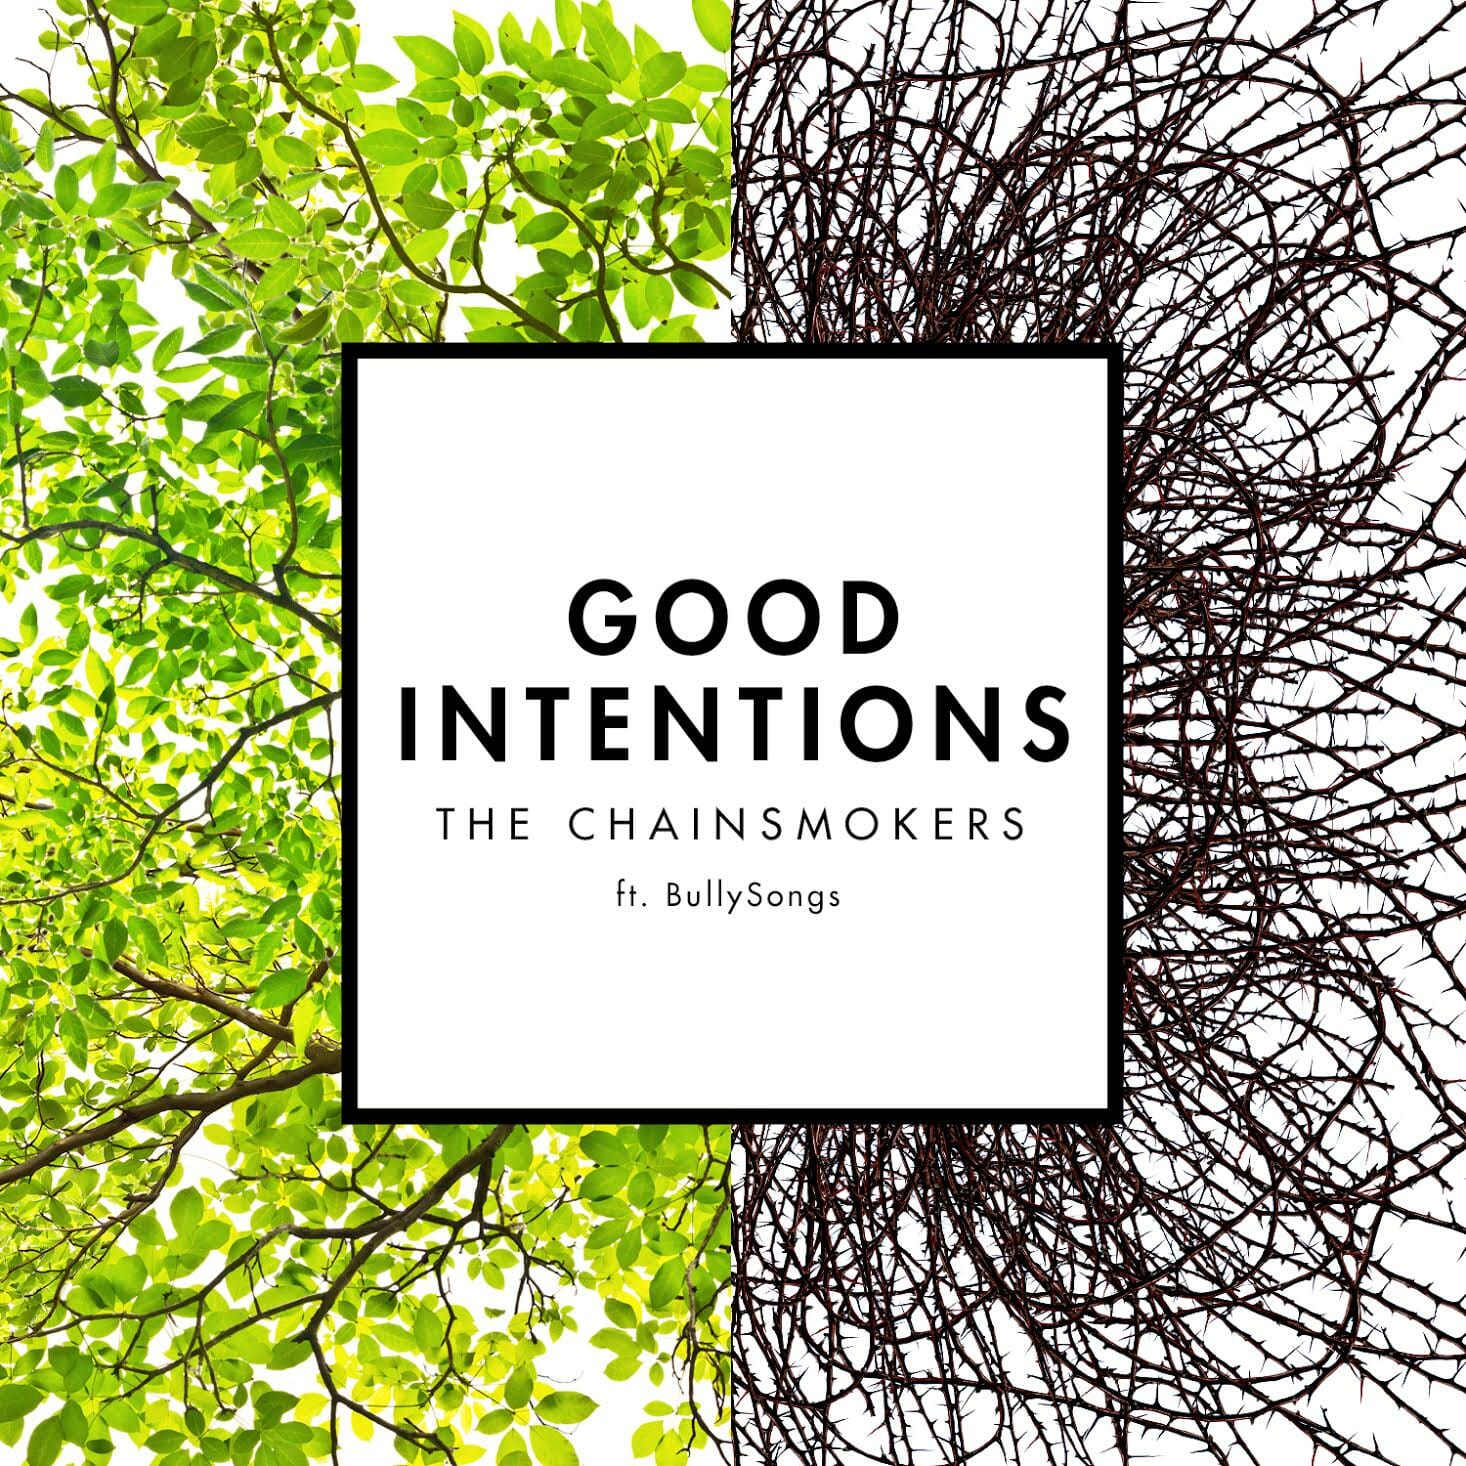 The Chainsmokers – Good Intentions ft. BullySongs (Original Mix)The Chainsmokers Good Intentions